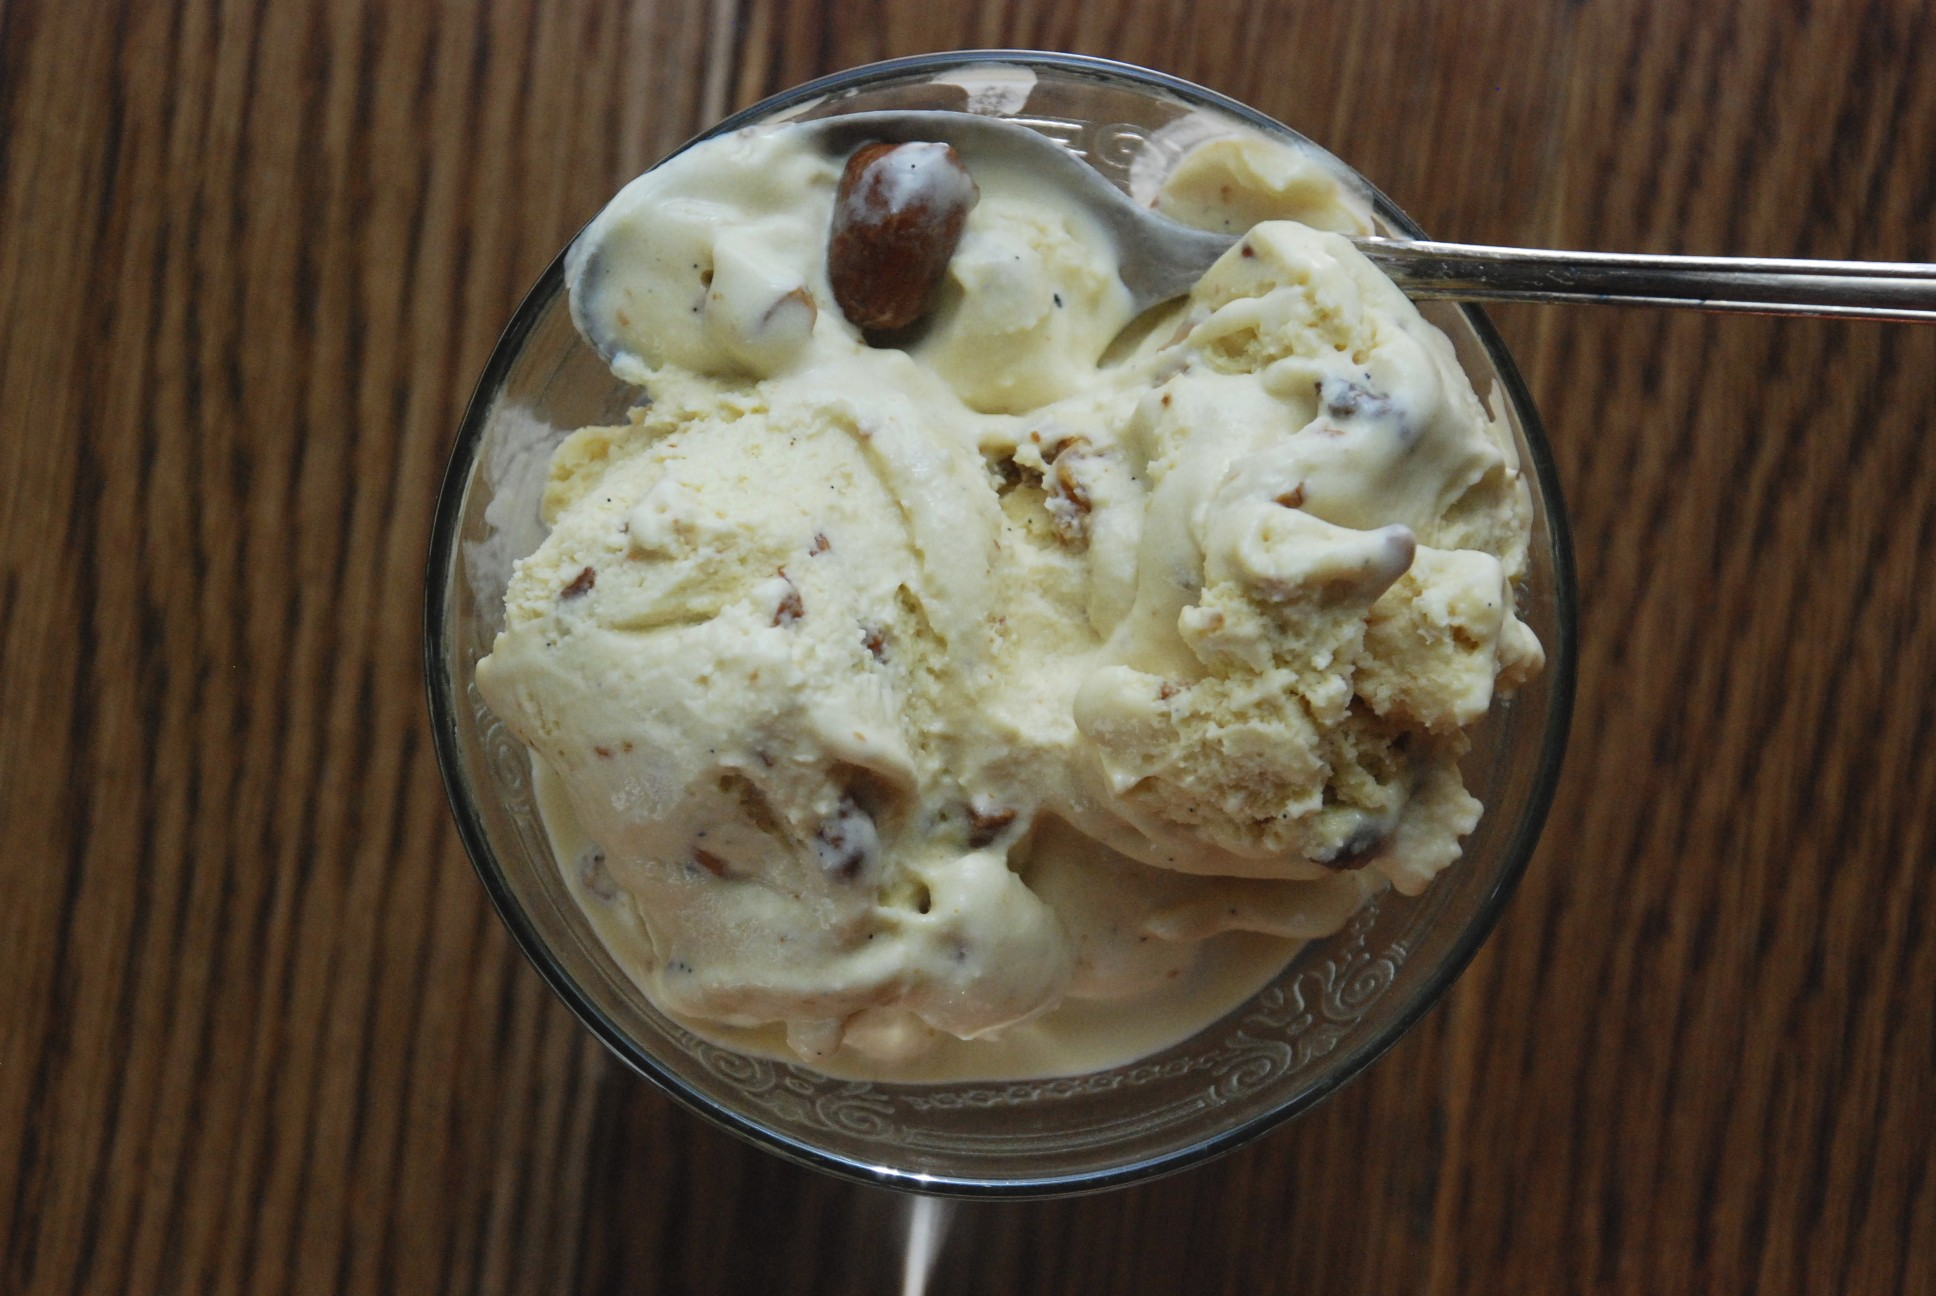 Maple Ice Cream with Tipsy Raisins and Maple-Candied Cashews